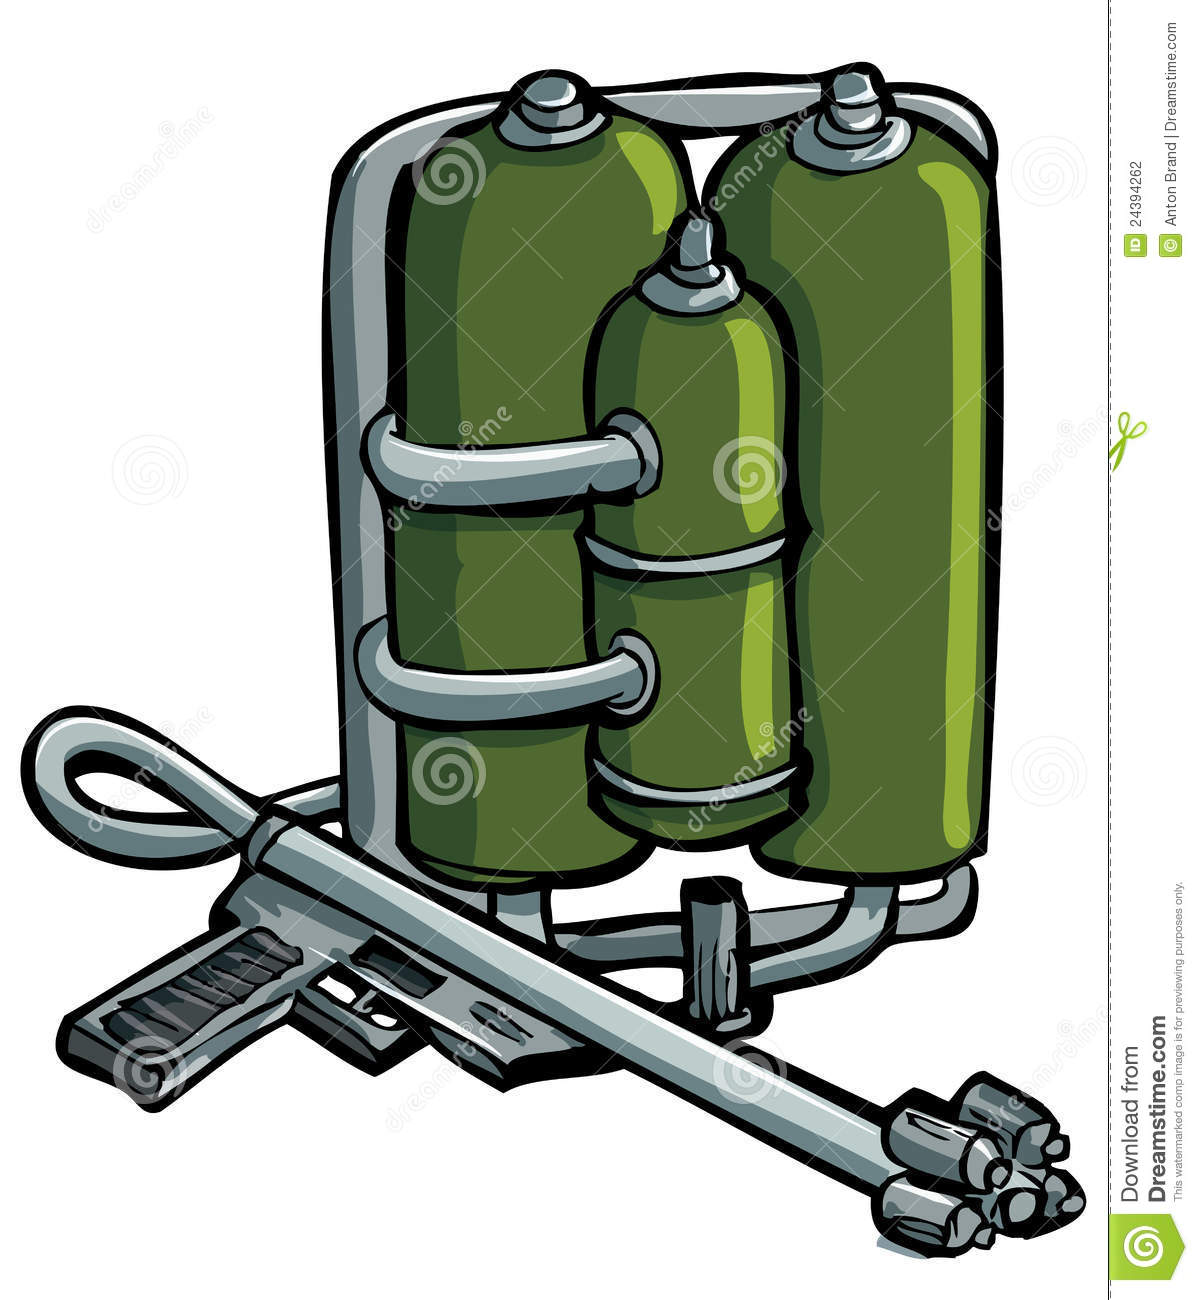 Cartoon Drawing Of Flame Thrower Stock Photography - Image: 24394262